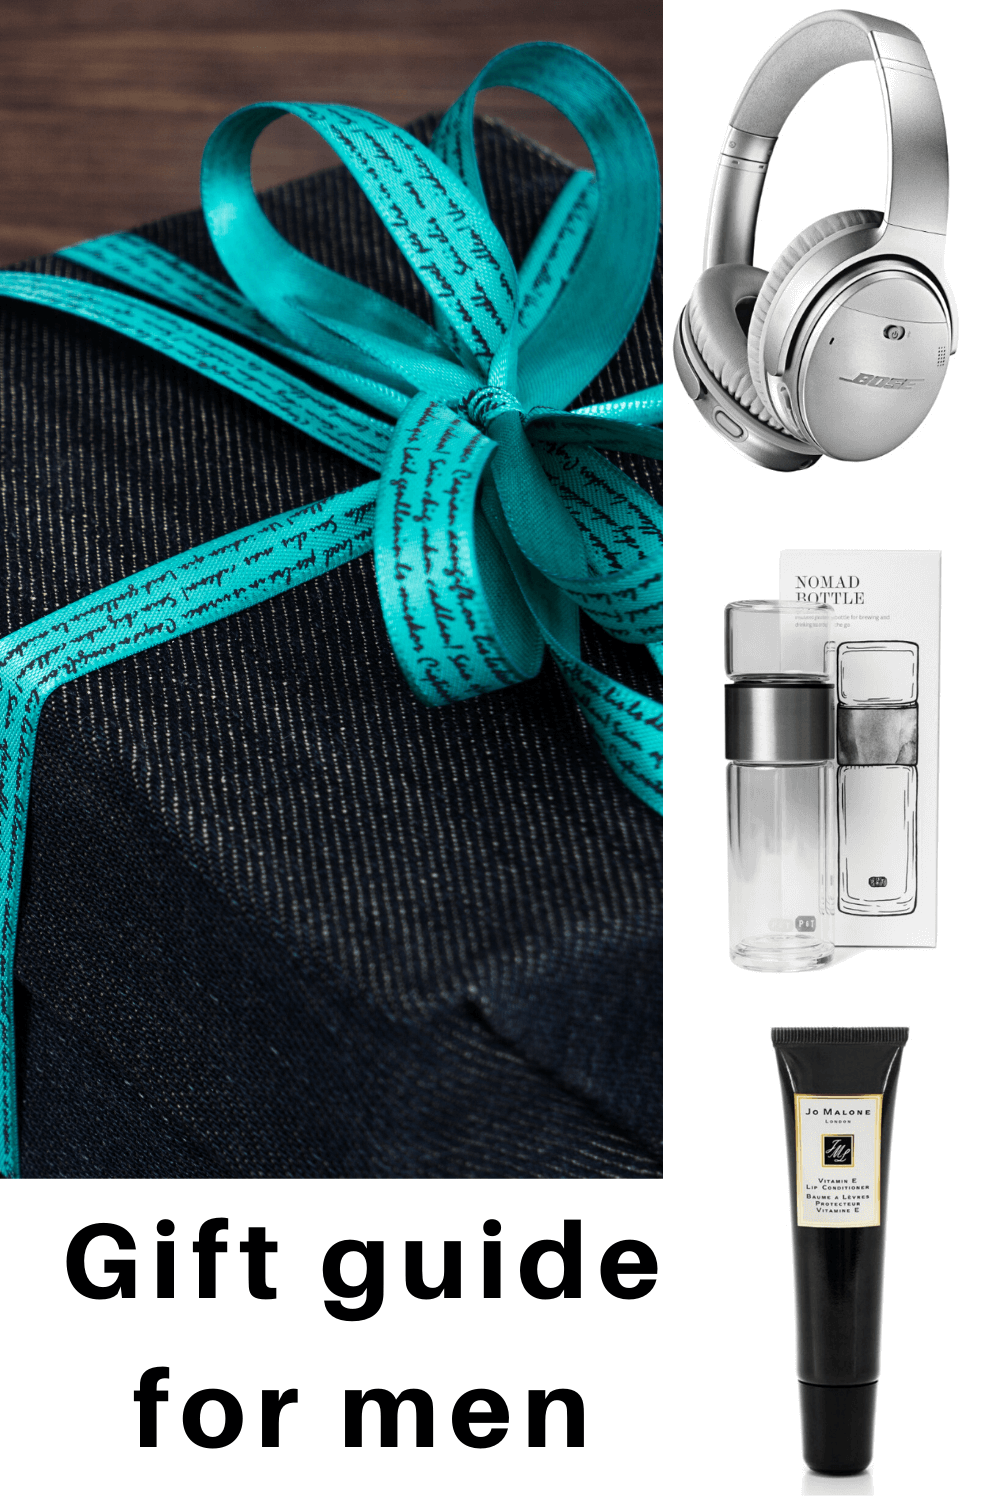 Best gifts for men 2020 - Christmas Gift Guide For Him, gift ideas for boyfriend or husband or dad, gift ideas for man.